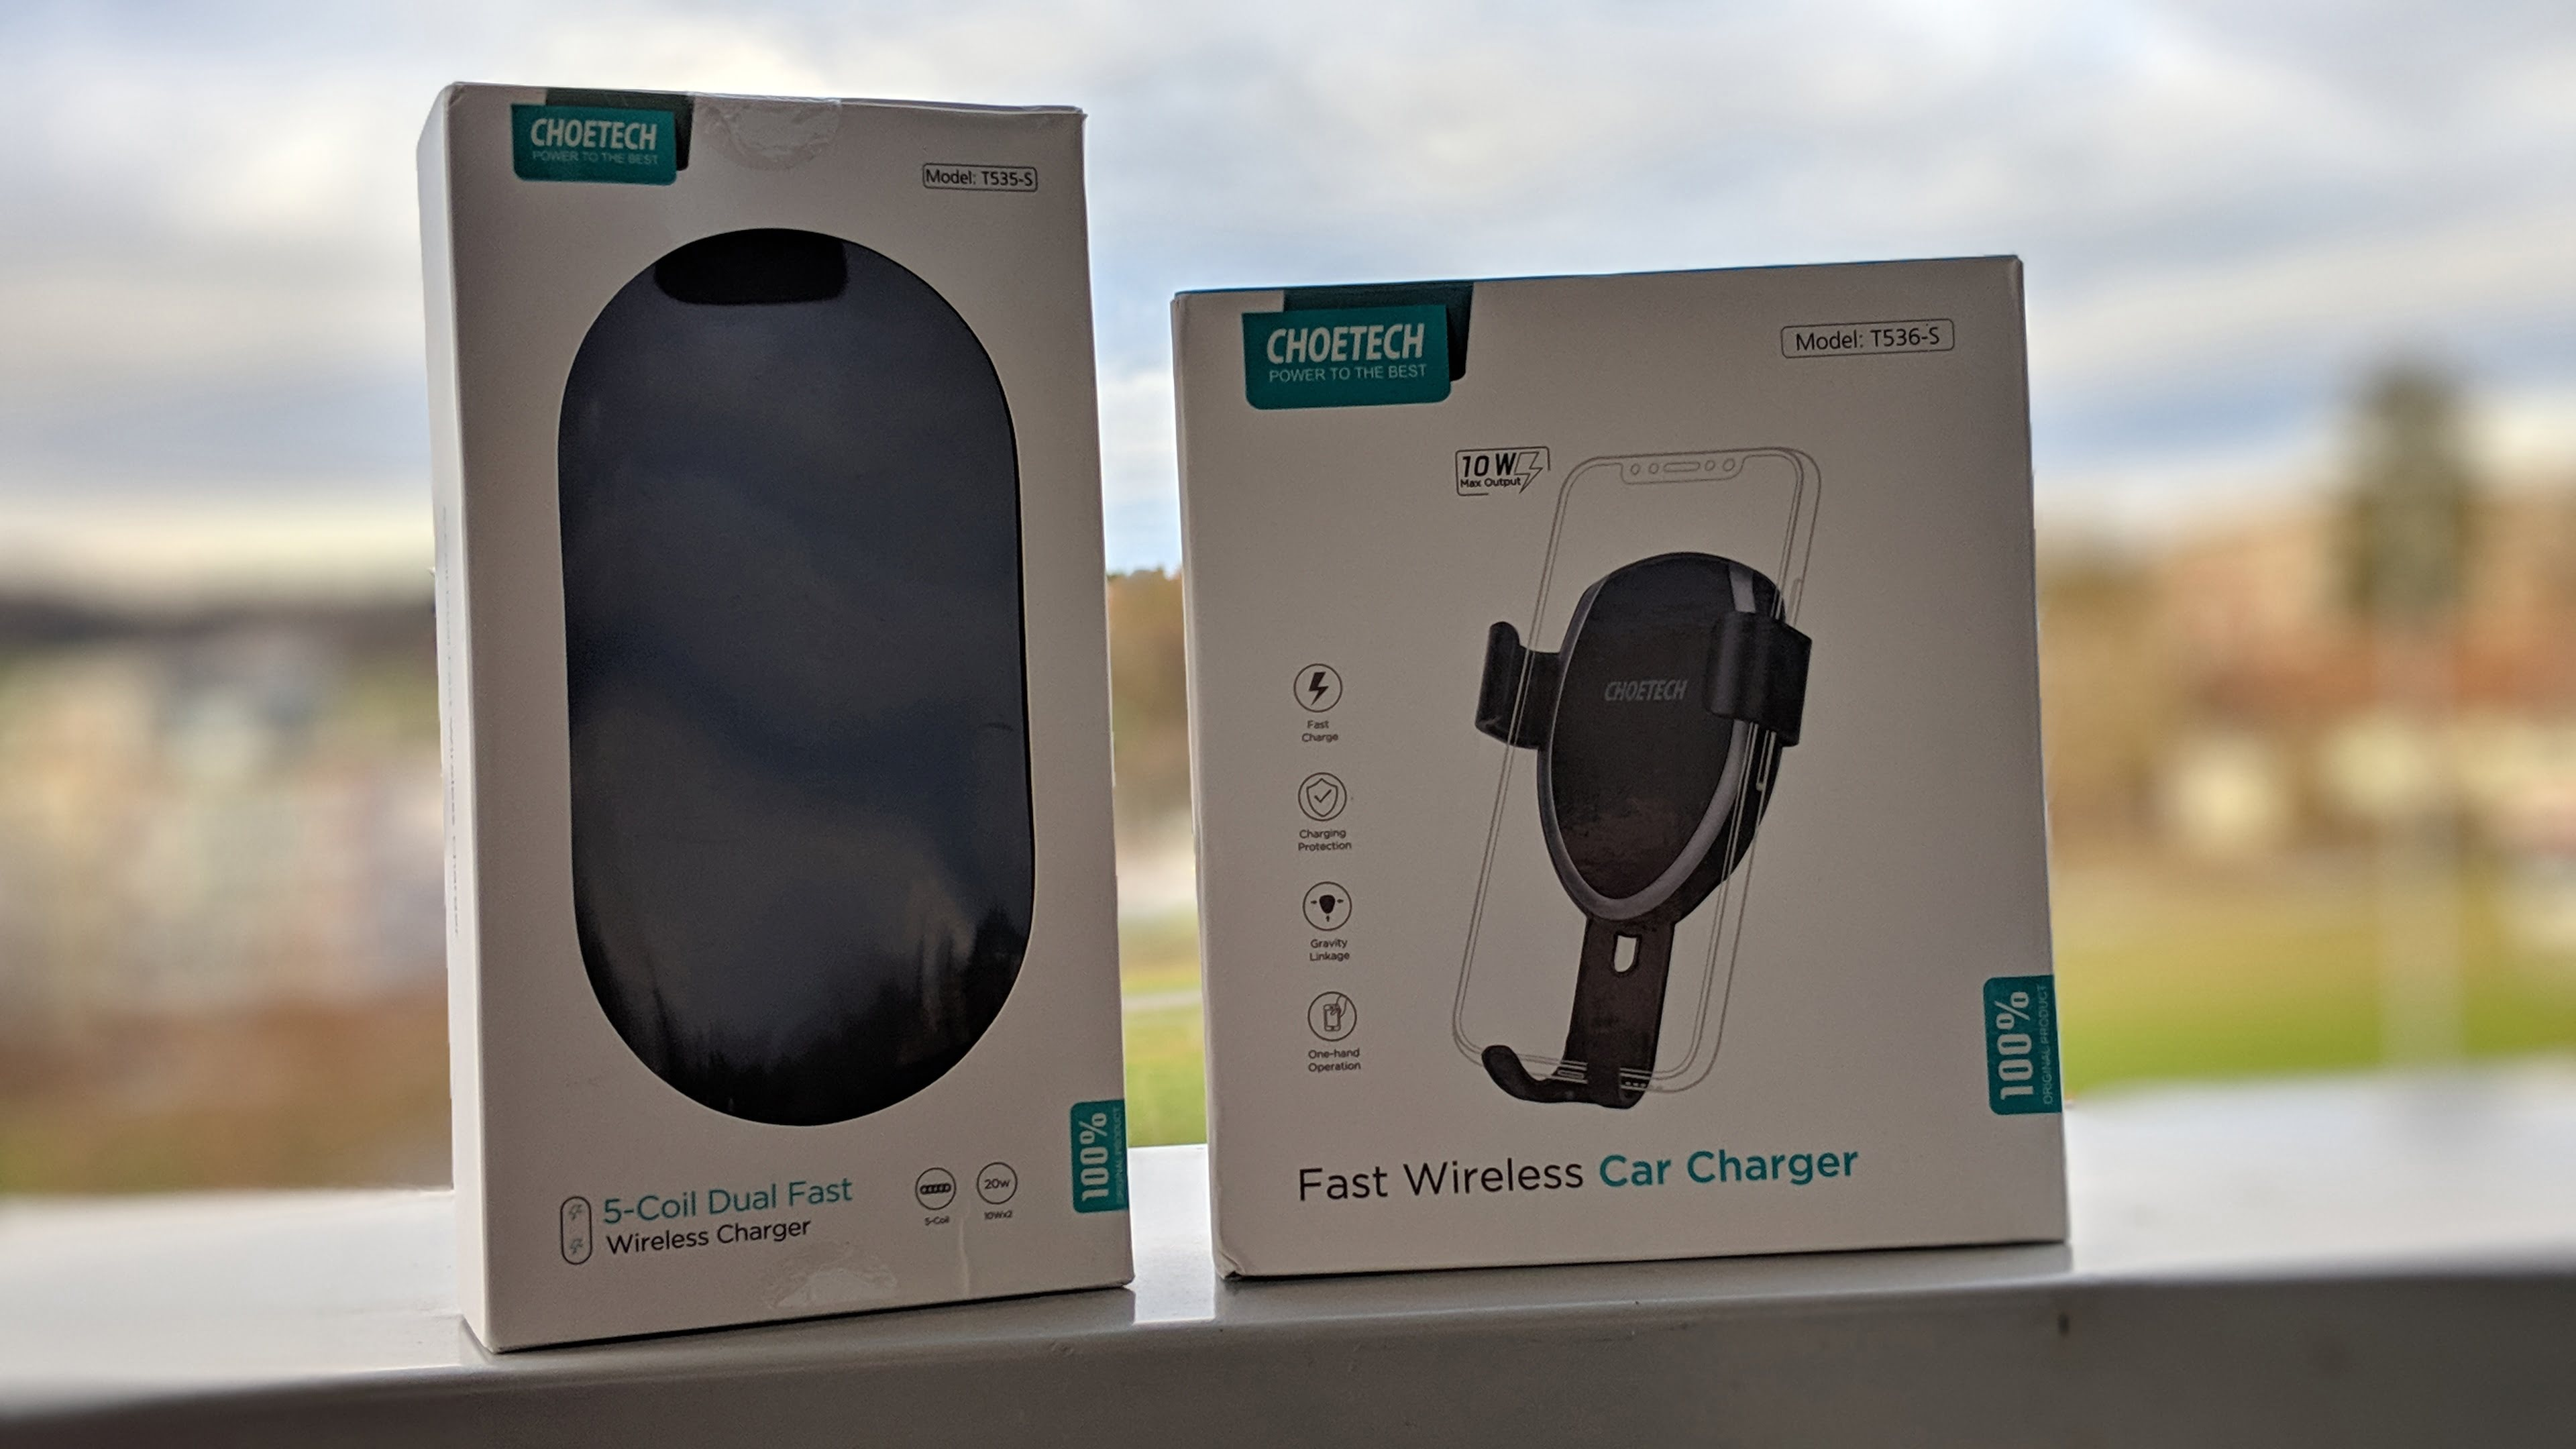 choetech fast wireless car charger im test. Black Bedroom Furniture Sets. Home Design Ideas